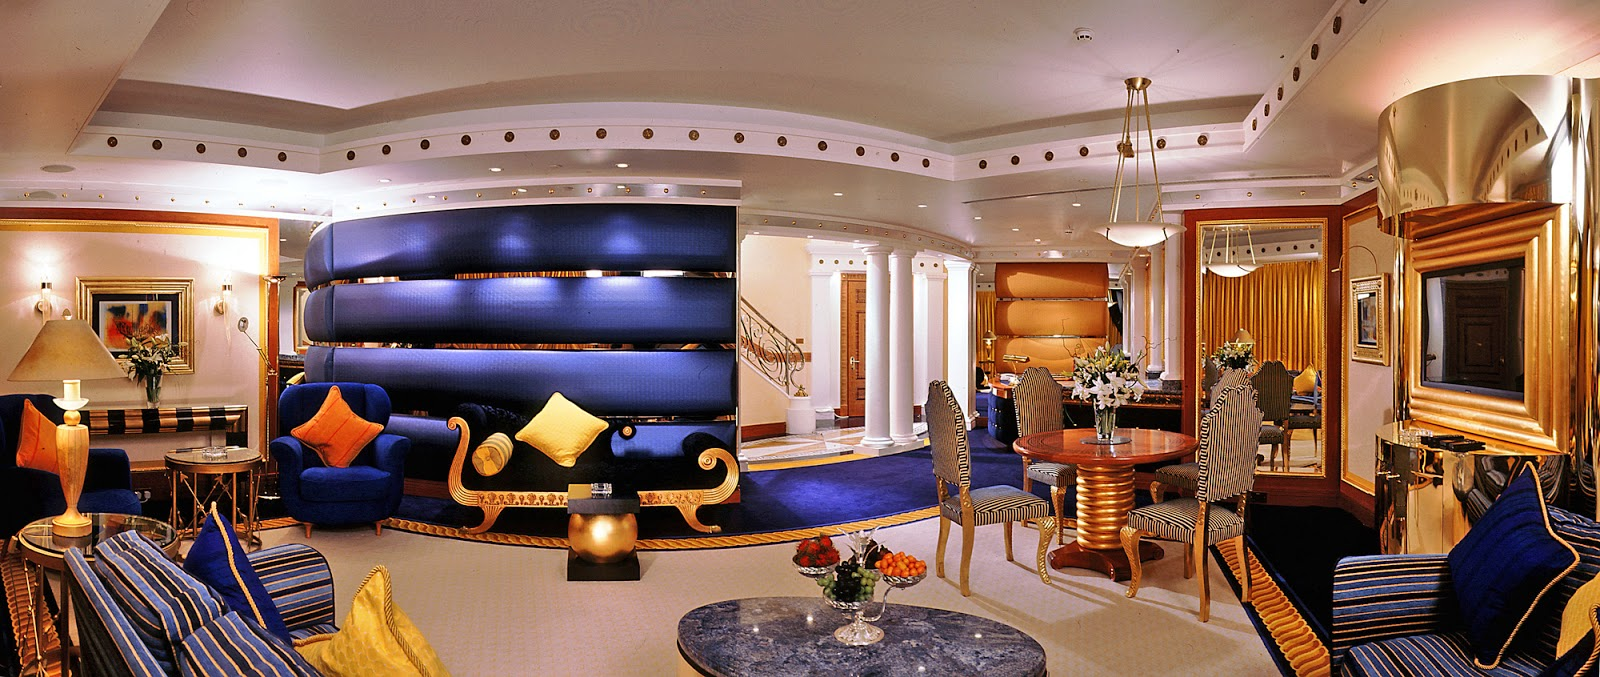 Burj al arab suite luxury hotel in dubai travel review for Luxury travel in dubai